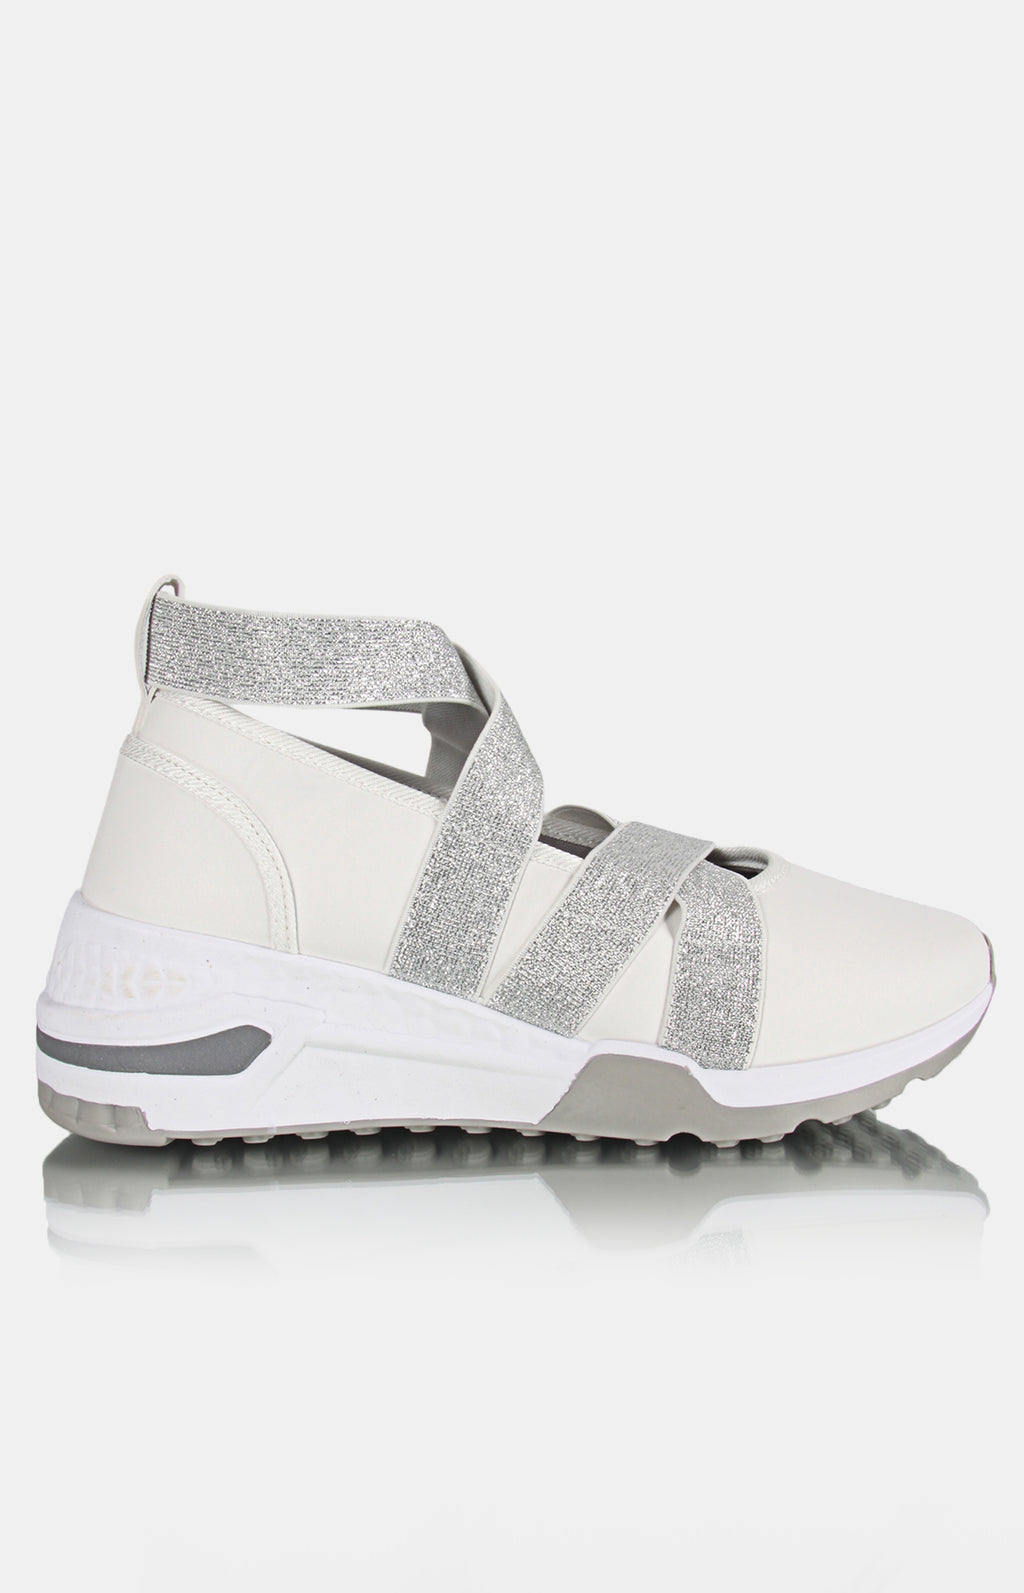 Ladies' Casual Sneakers - White-Grey